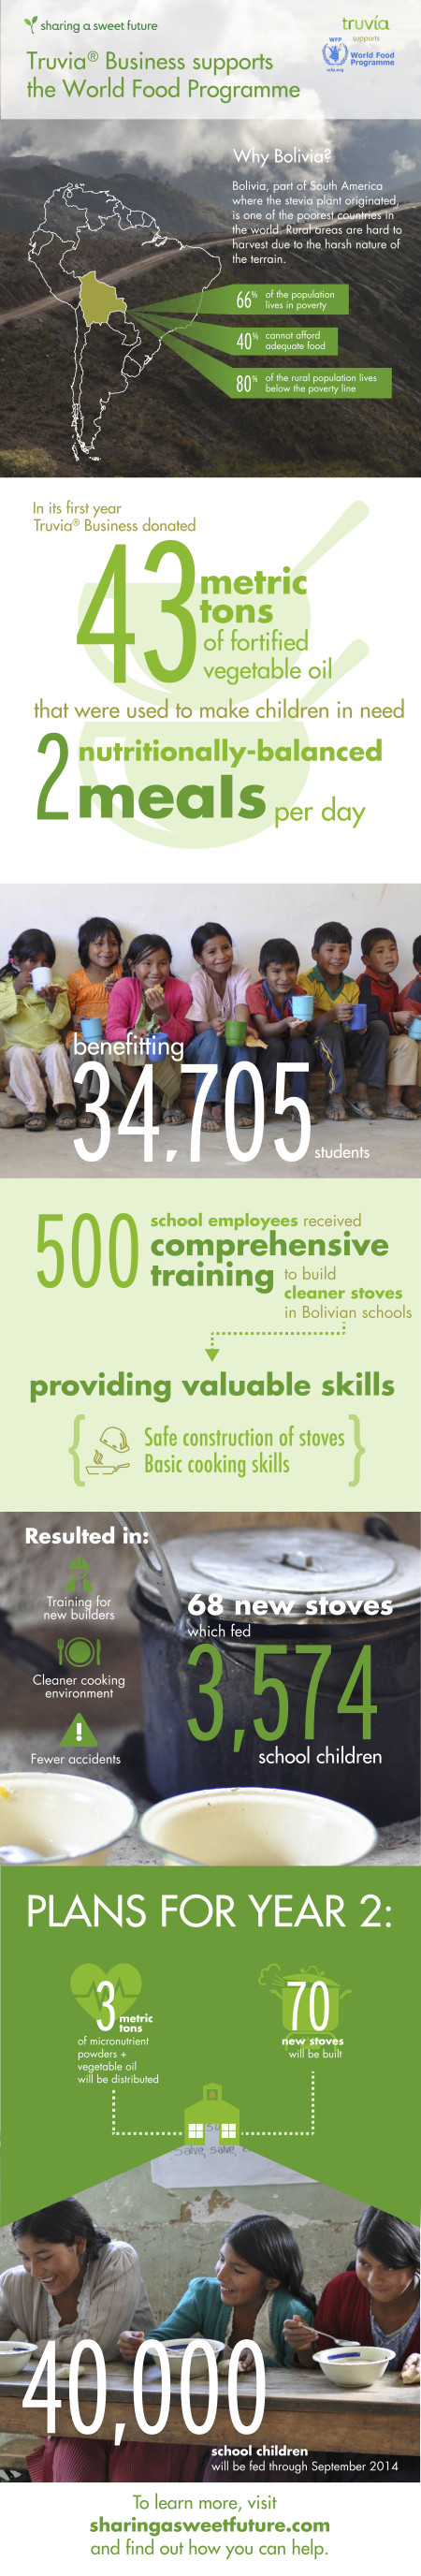 Truvia_Infographic_101313_Corrected